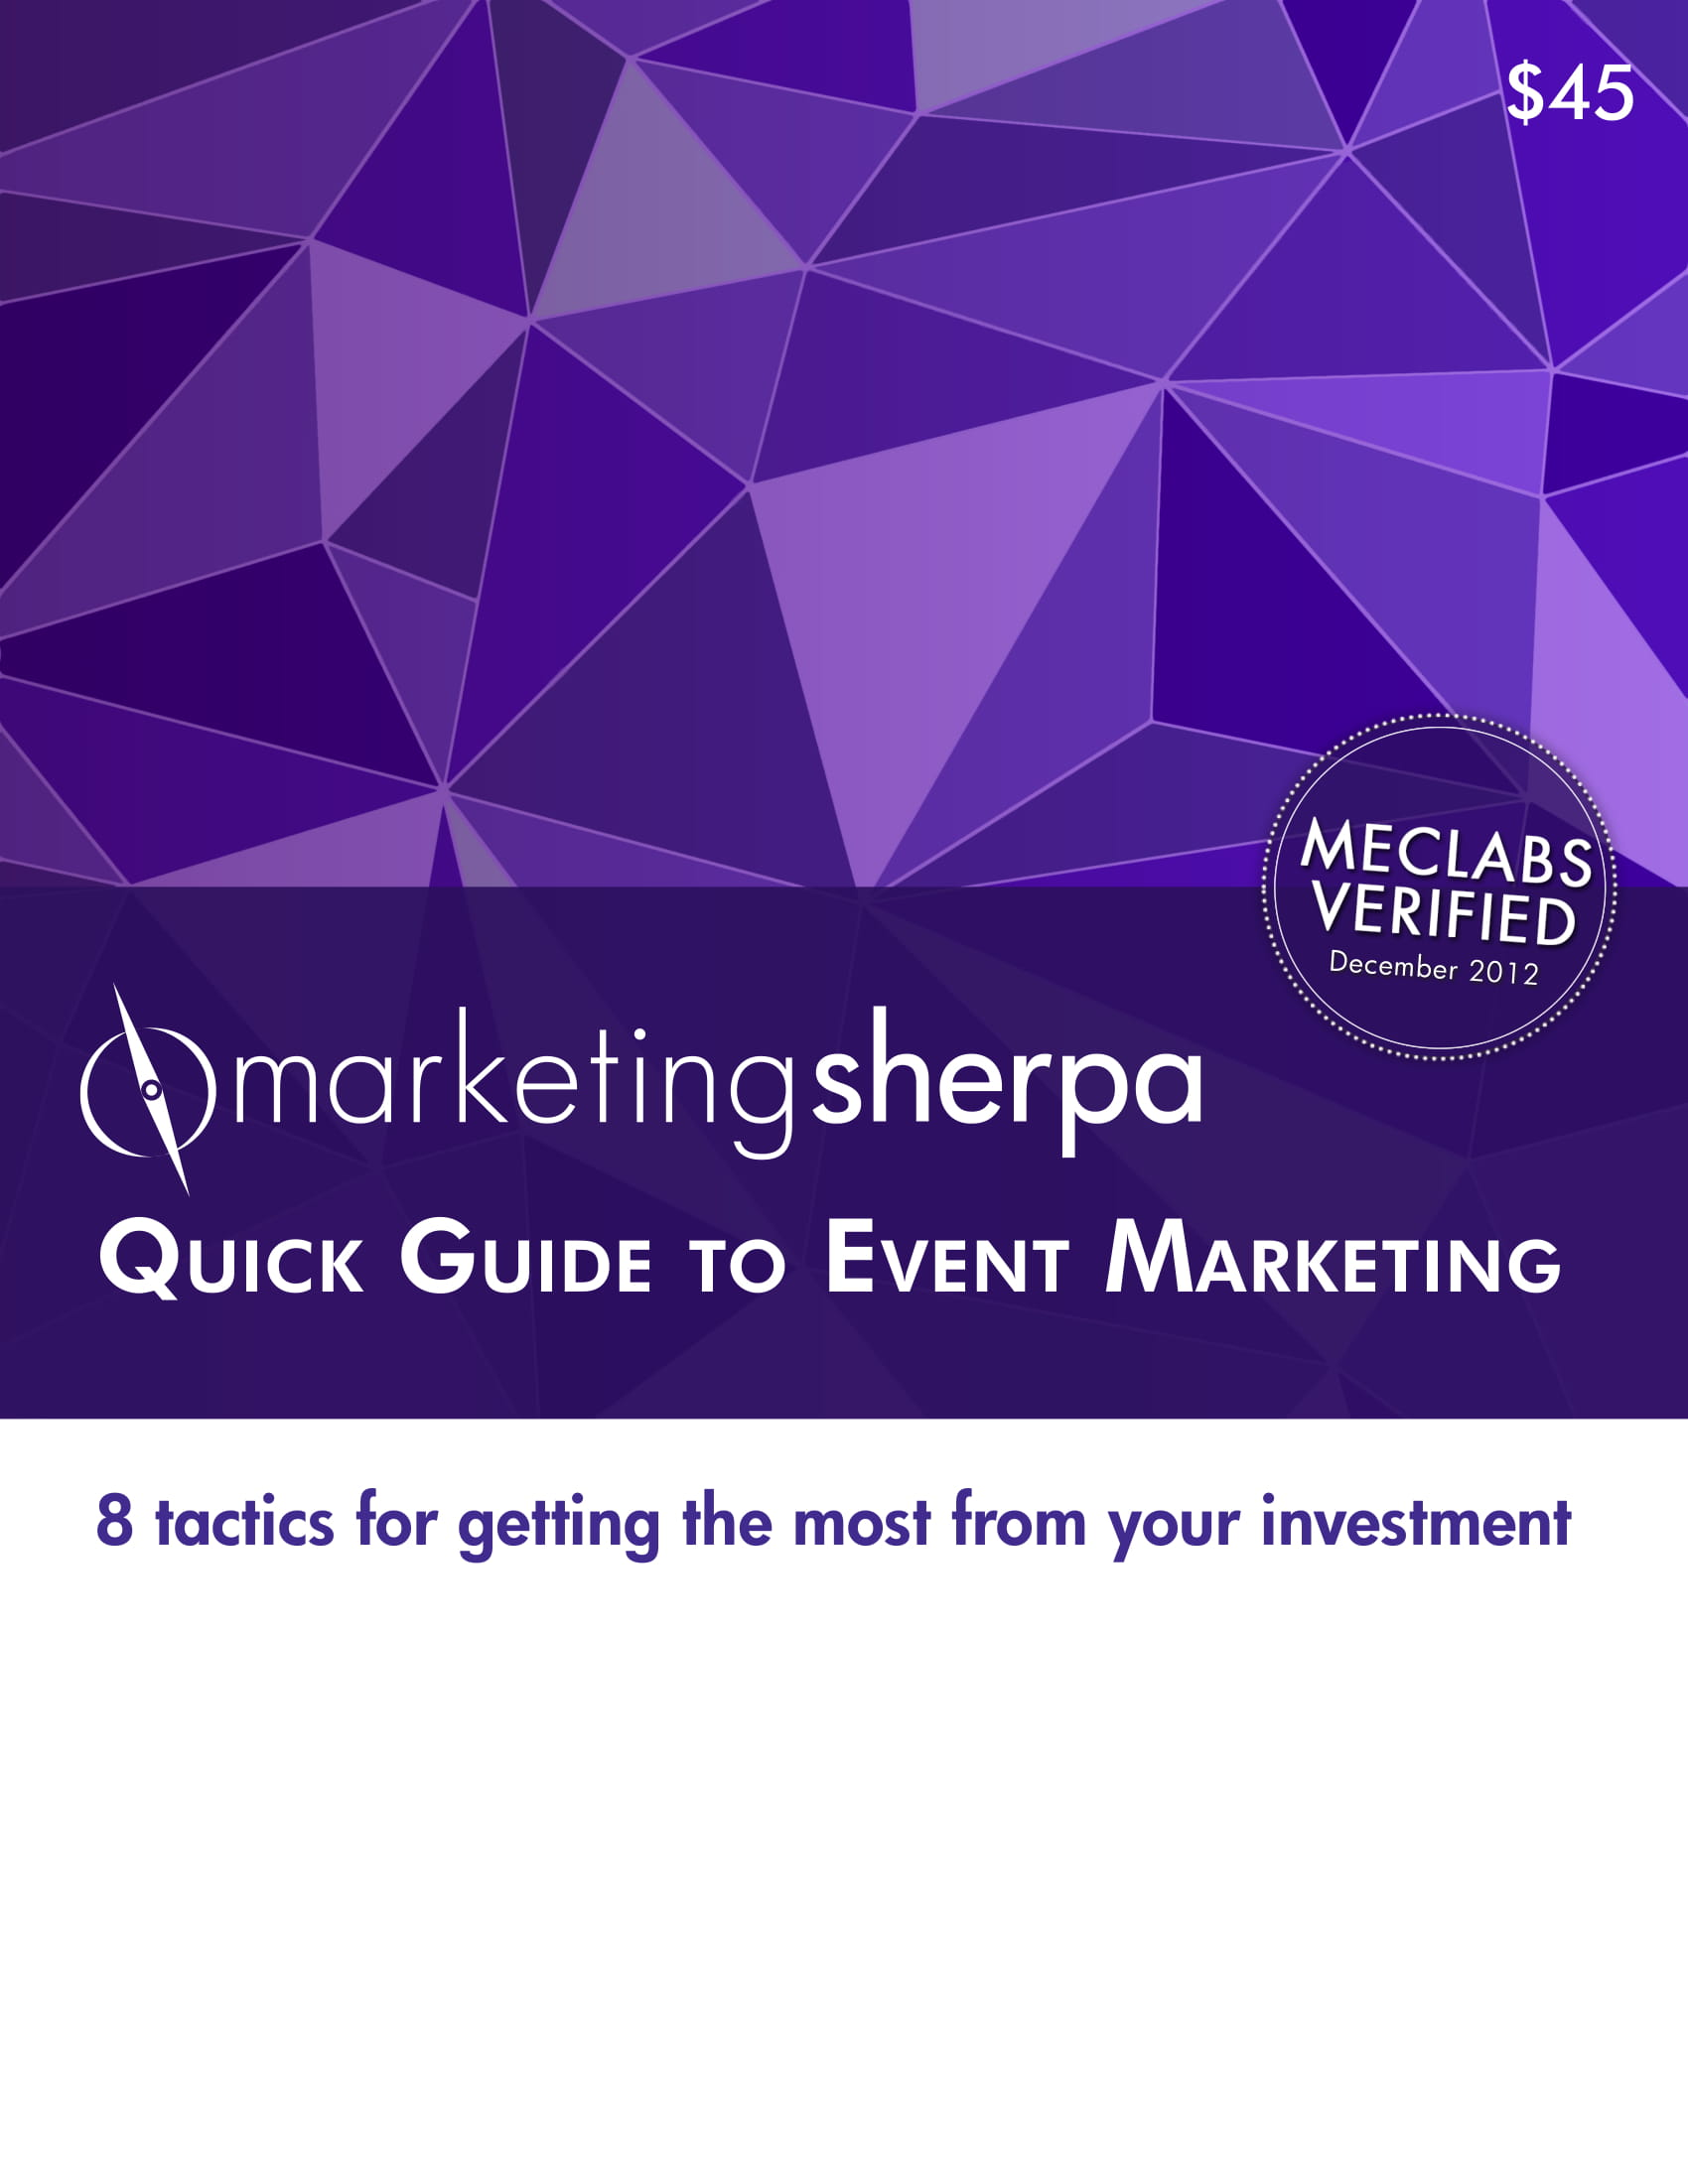 event marketing planning guide example 01